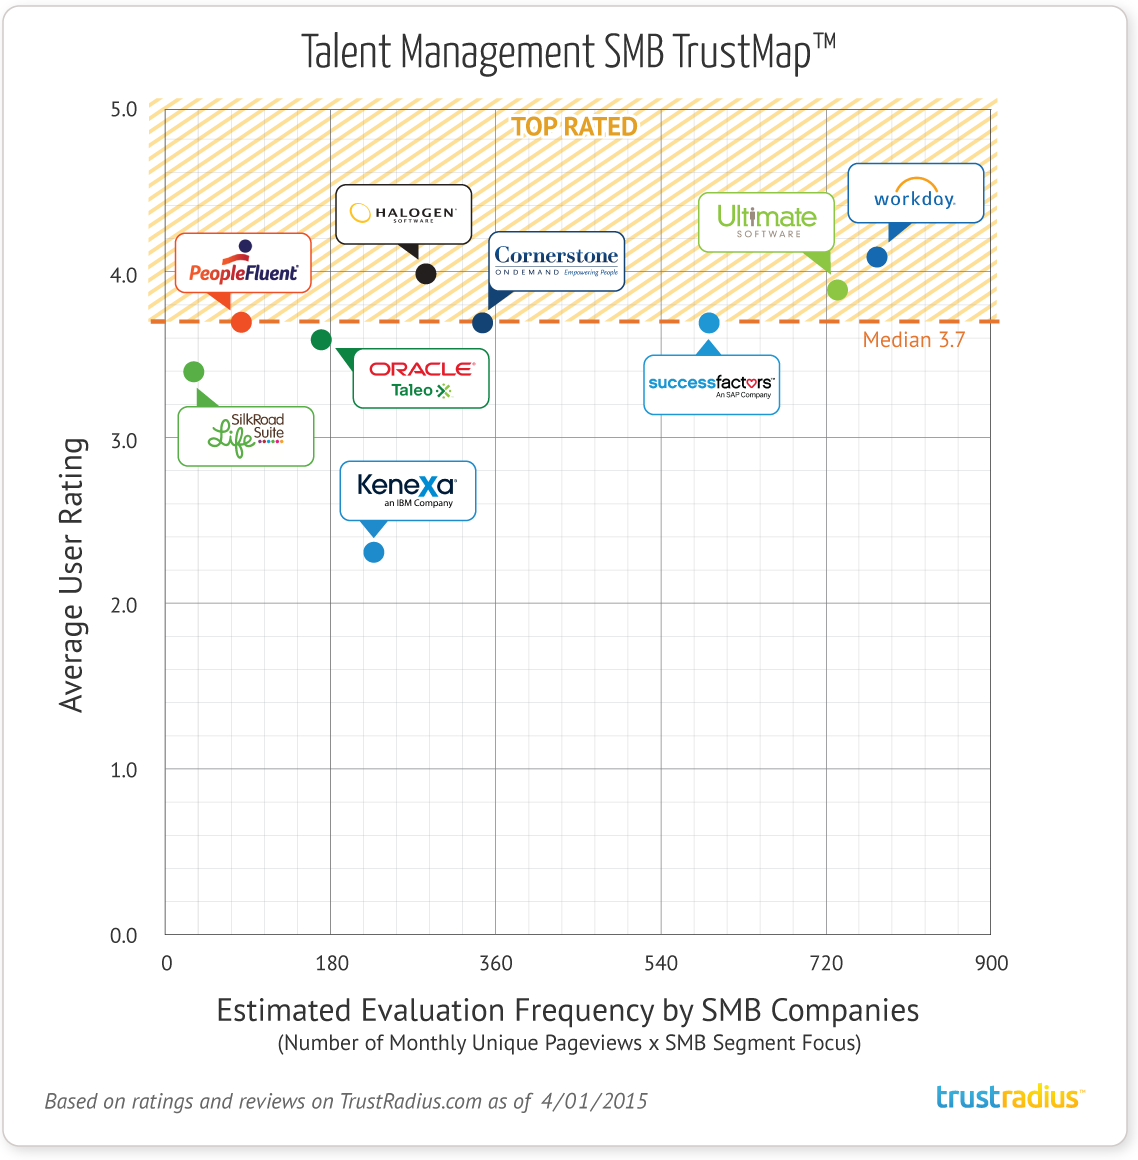 SMB Talent Management Software TrustMap